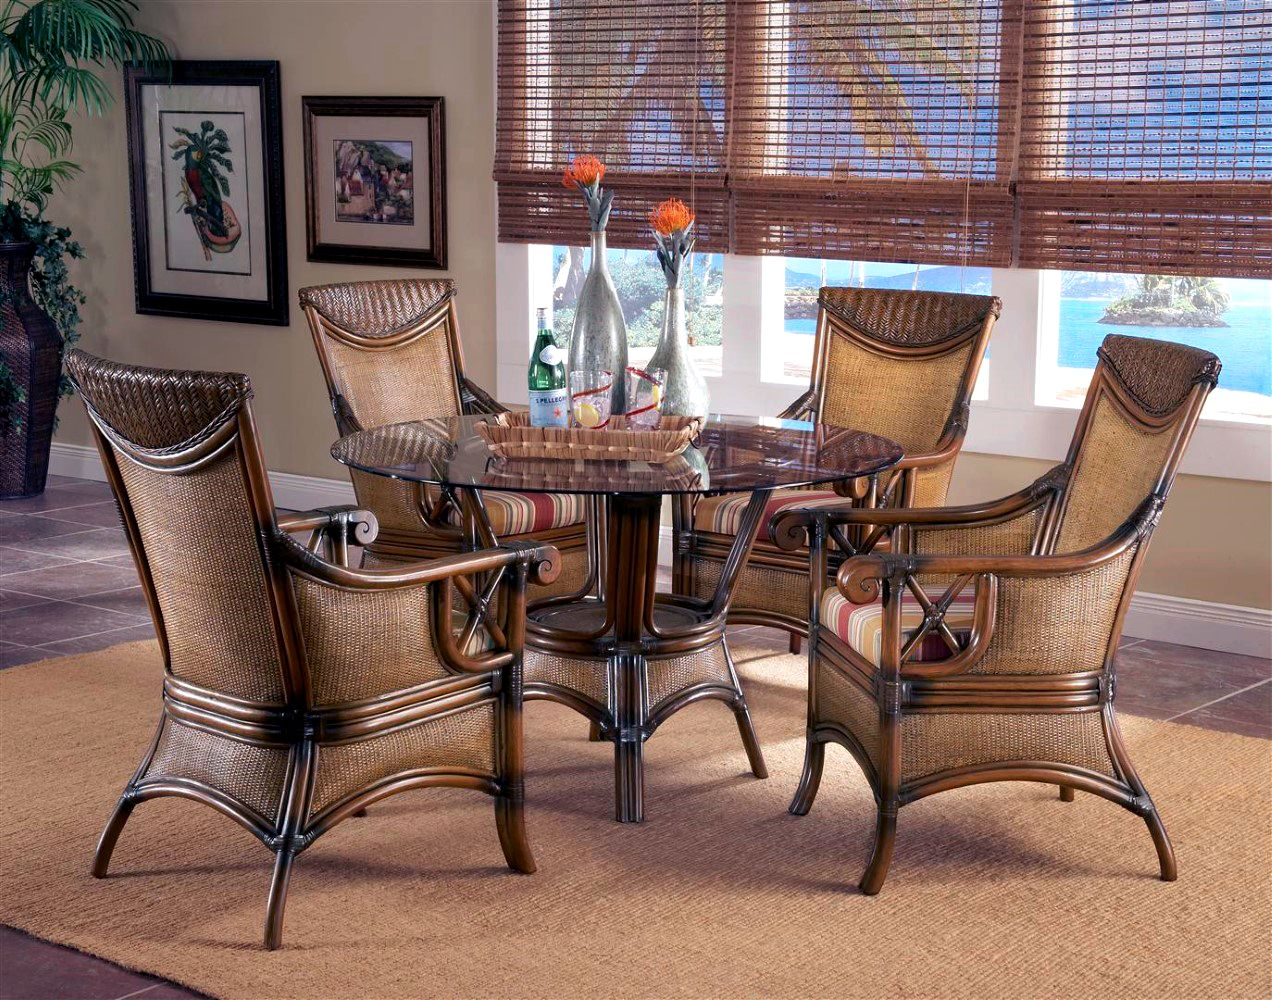 Pacifica Rattan Dining Arm Chair Model 4321 from South Sea ...